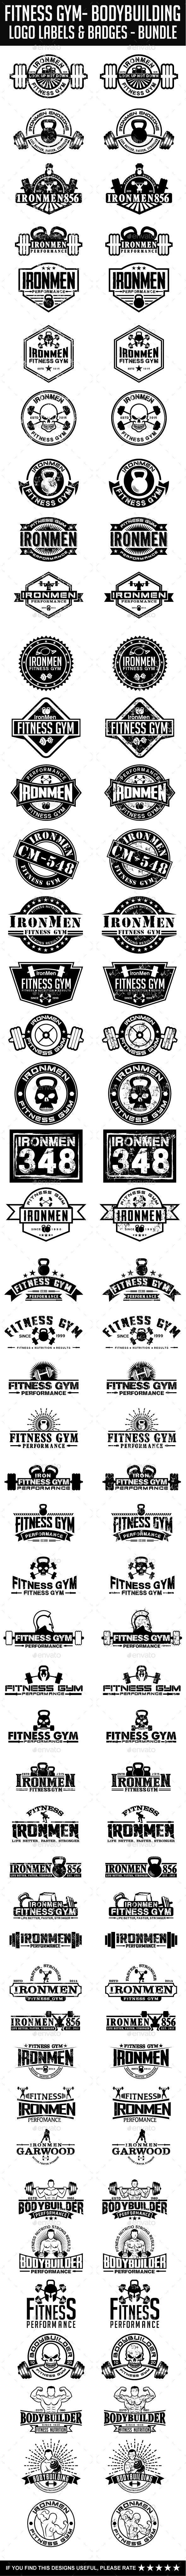 37 best gym ideas images on Pinterest | Gym logo, Logo templates and ...